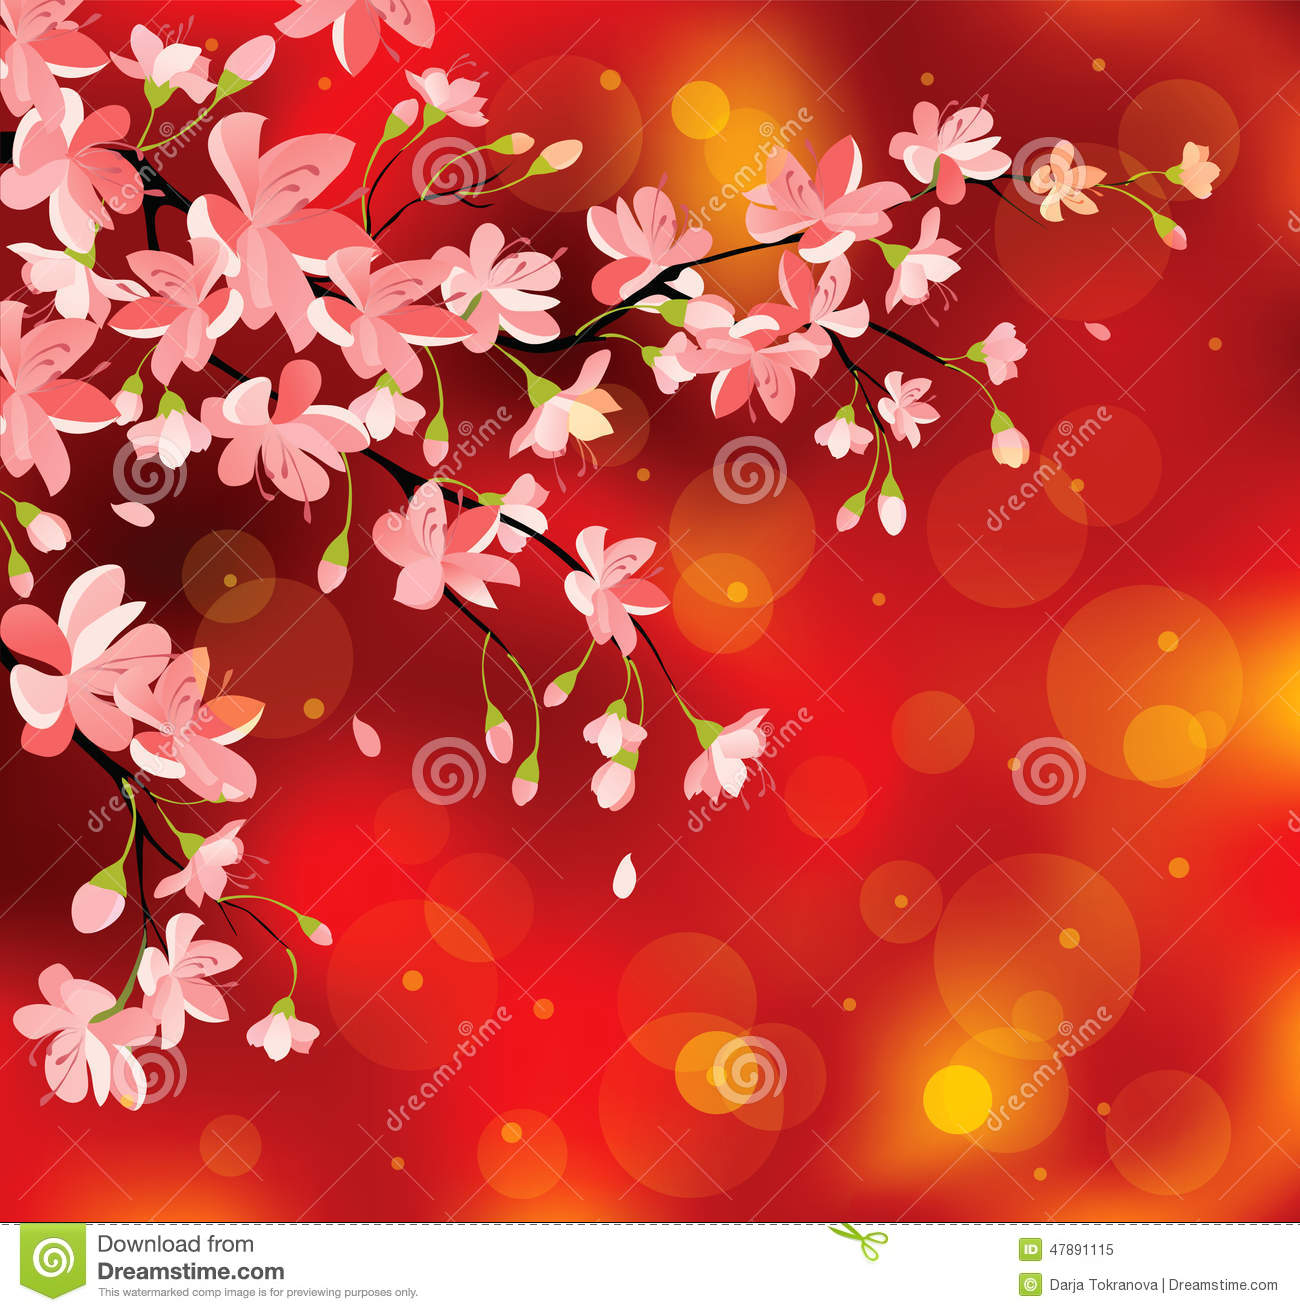 Chinese new year flowers stock vector image 47891115 - Flowers for chinese new year ...